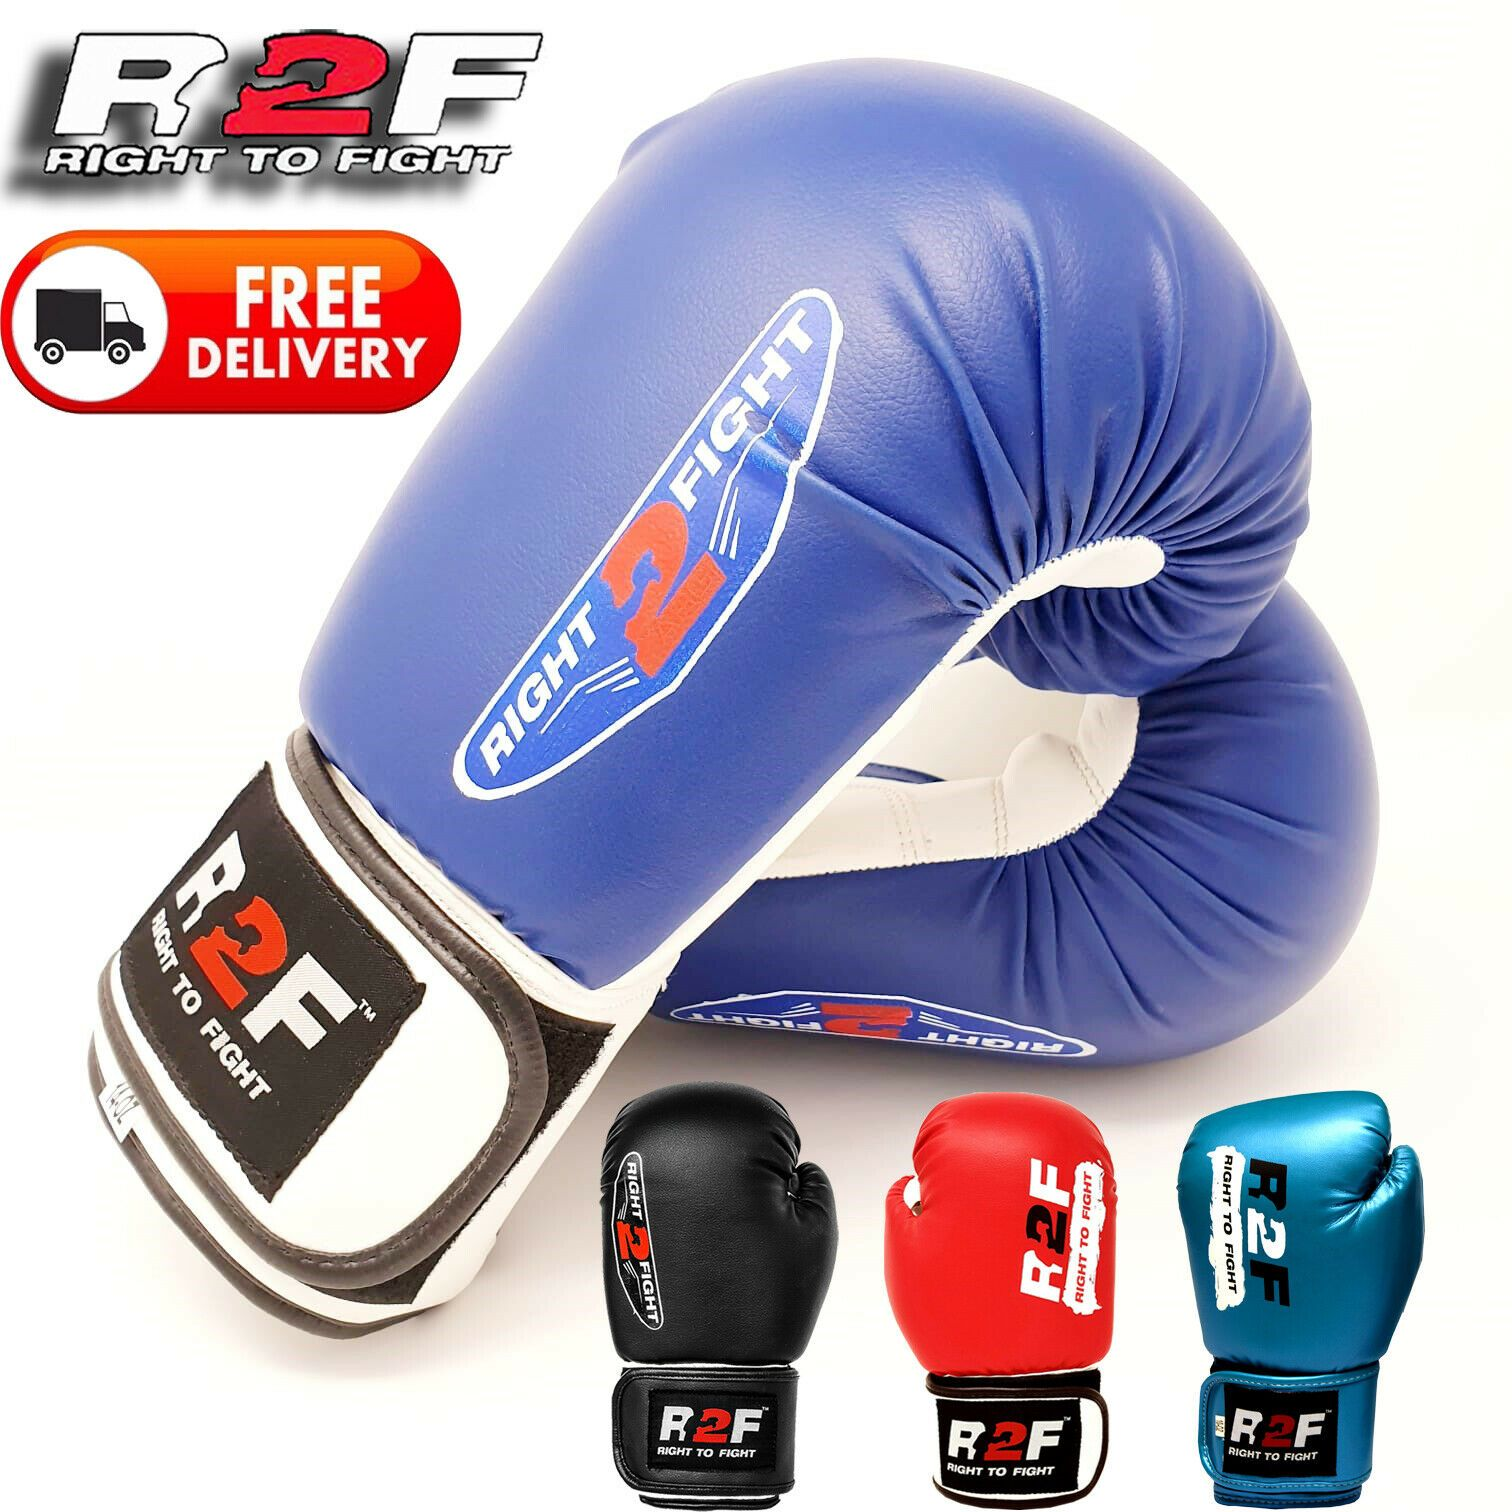 Boxing Gloves Sparring Punch Bag Gym Training Fight MMA Muay Thai Kickboxing